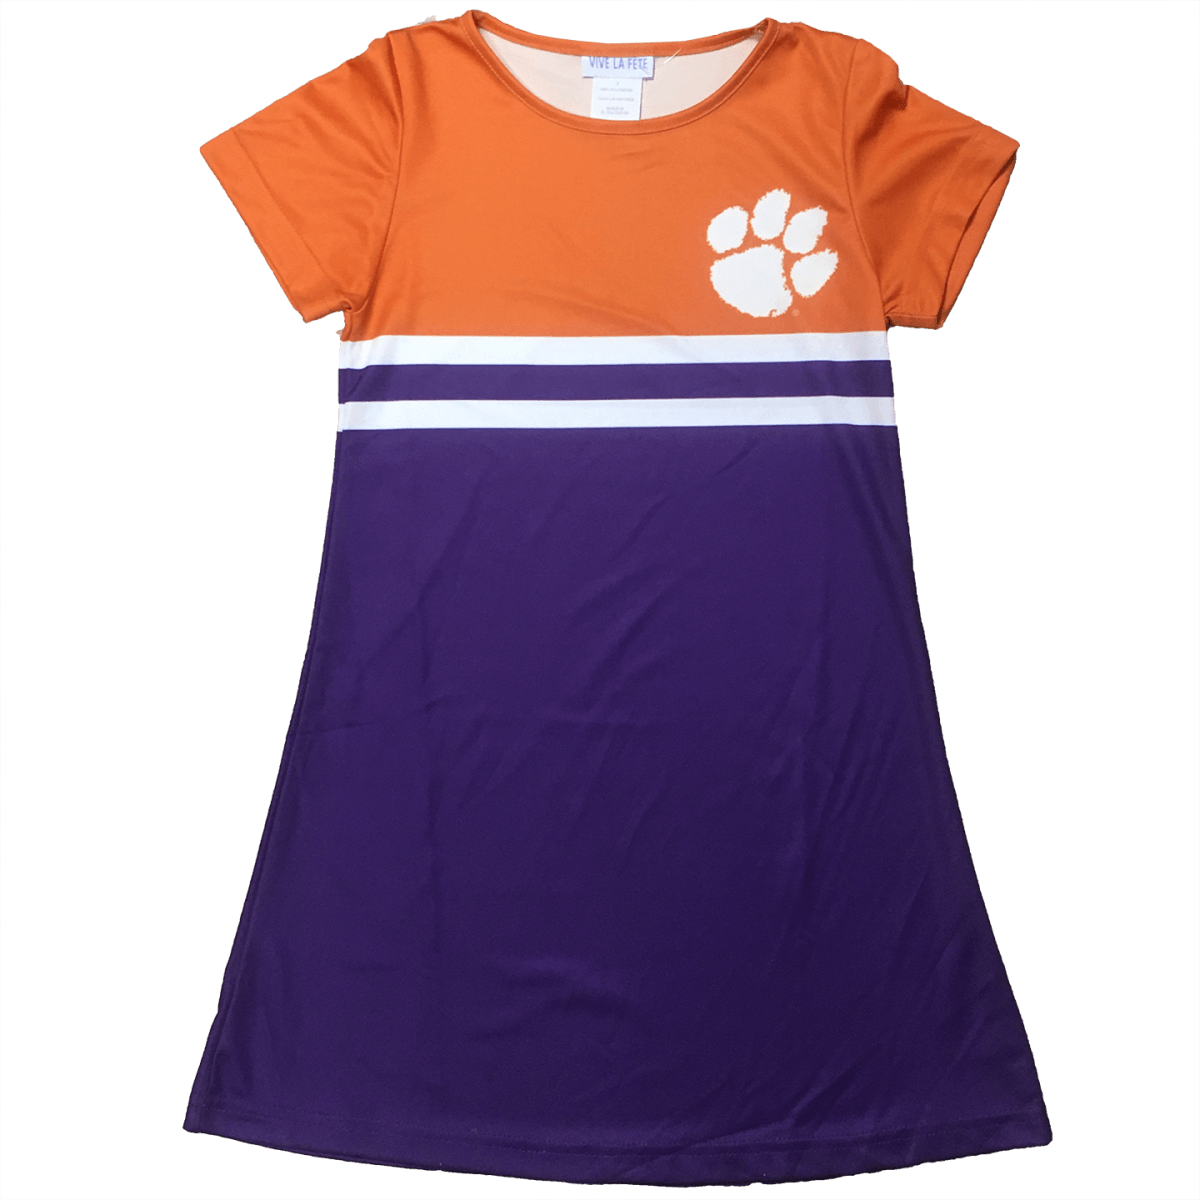 Clemson Orange and Purple Dress A line Dress Short Sleeve - Mr. Knickerbocker